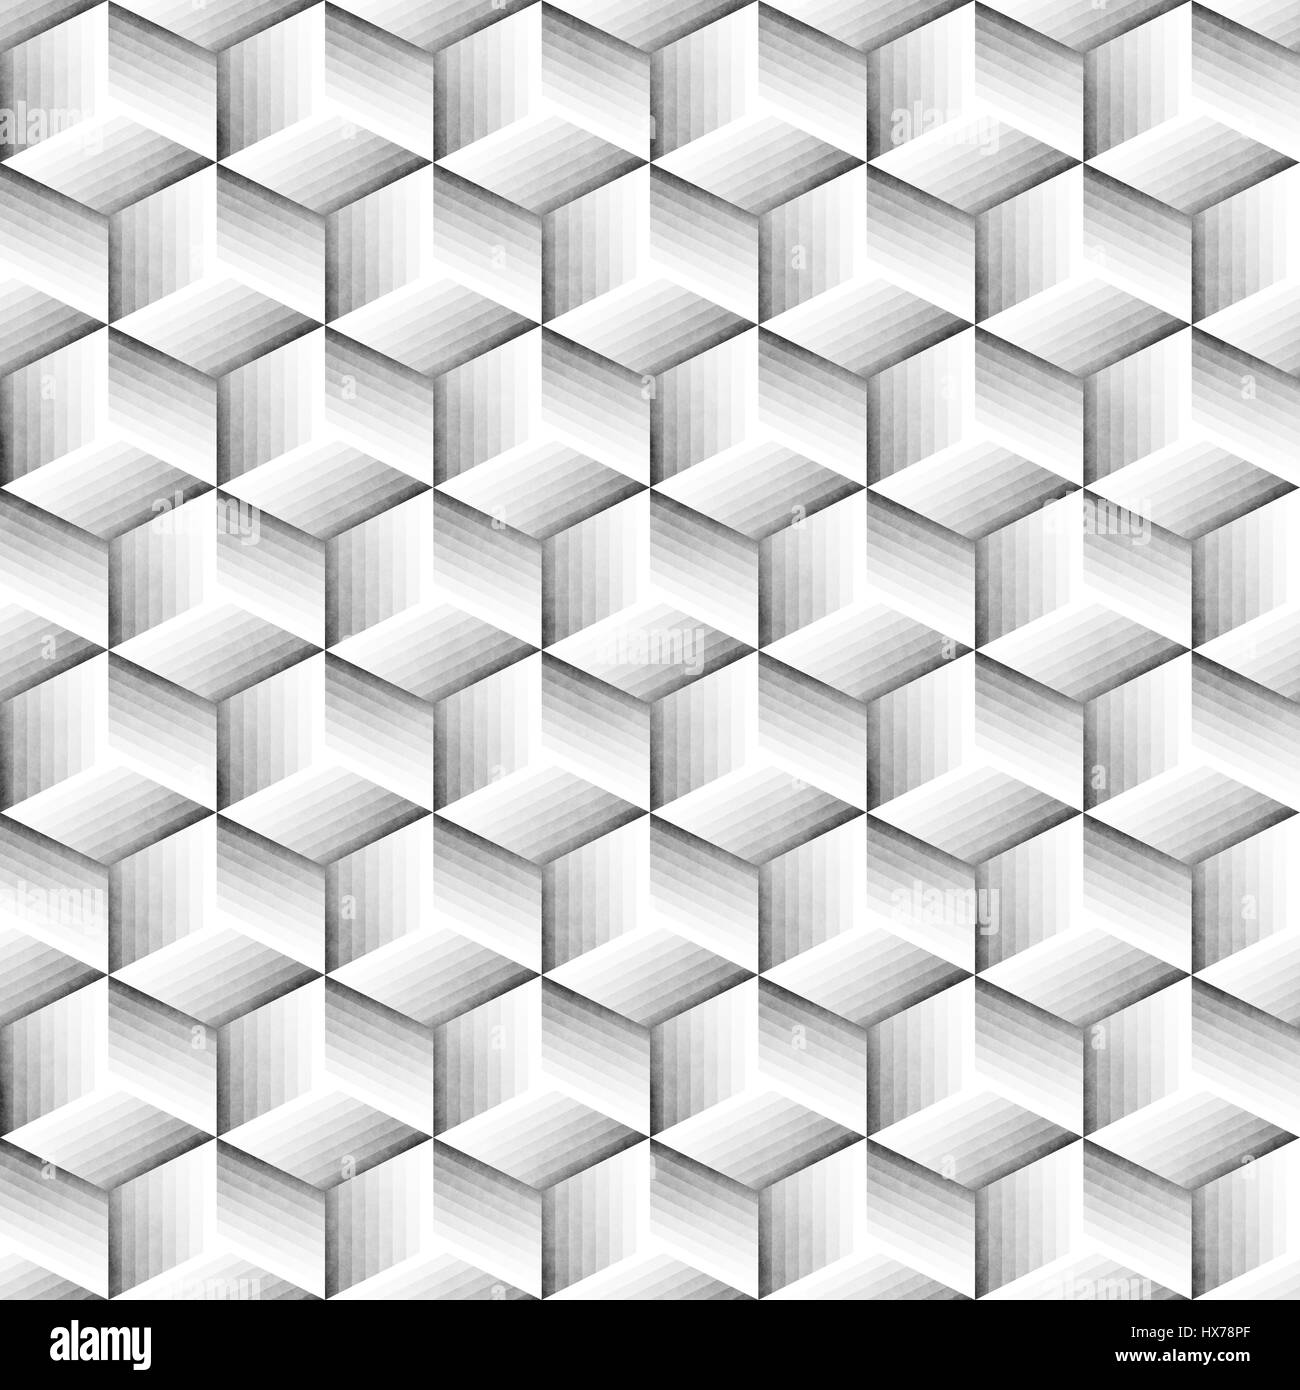 Seamless Monochrome Pattern. Grungy Geometric Shapes Tiling ...